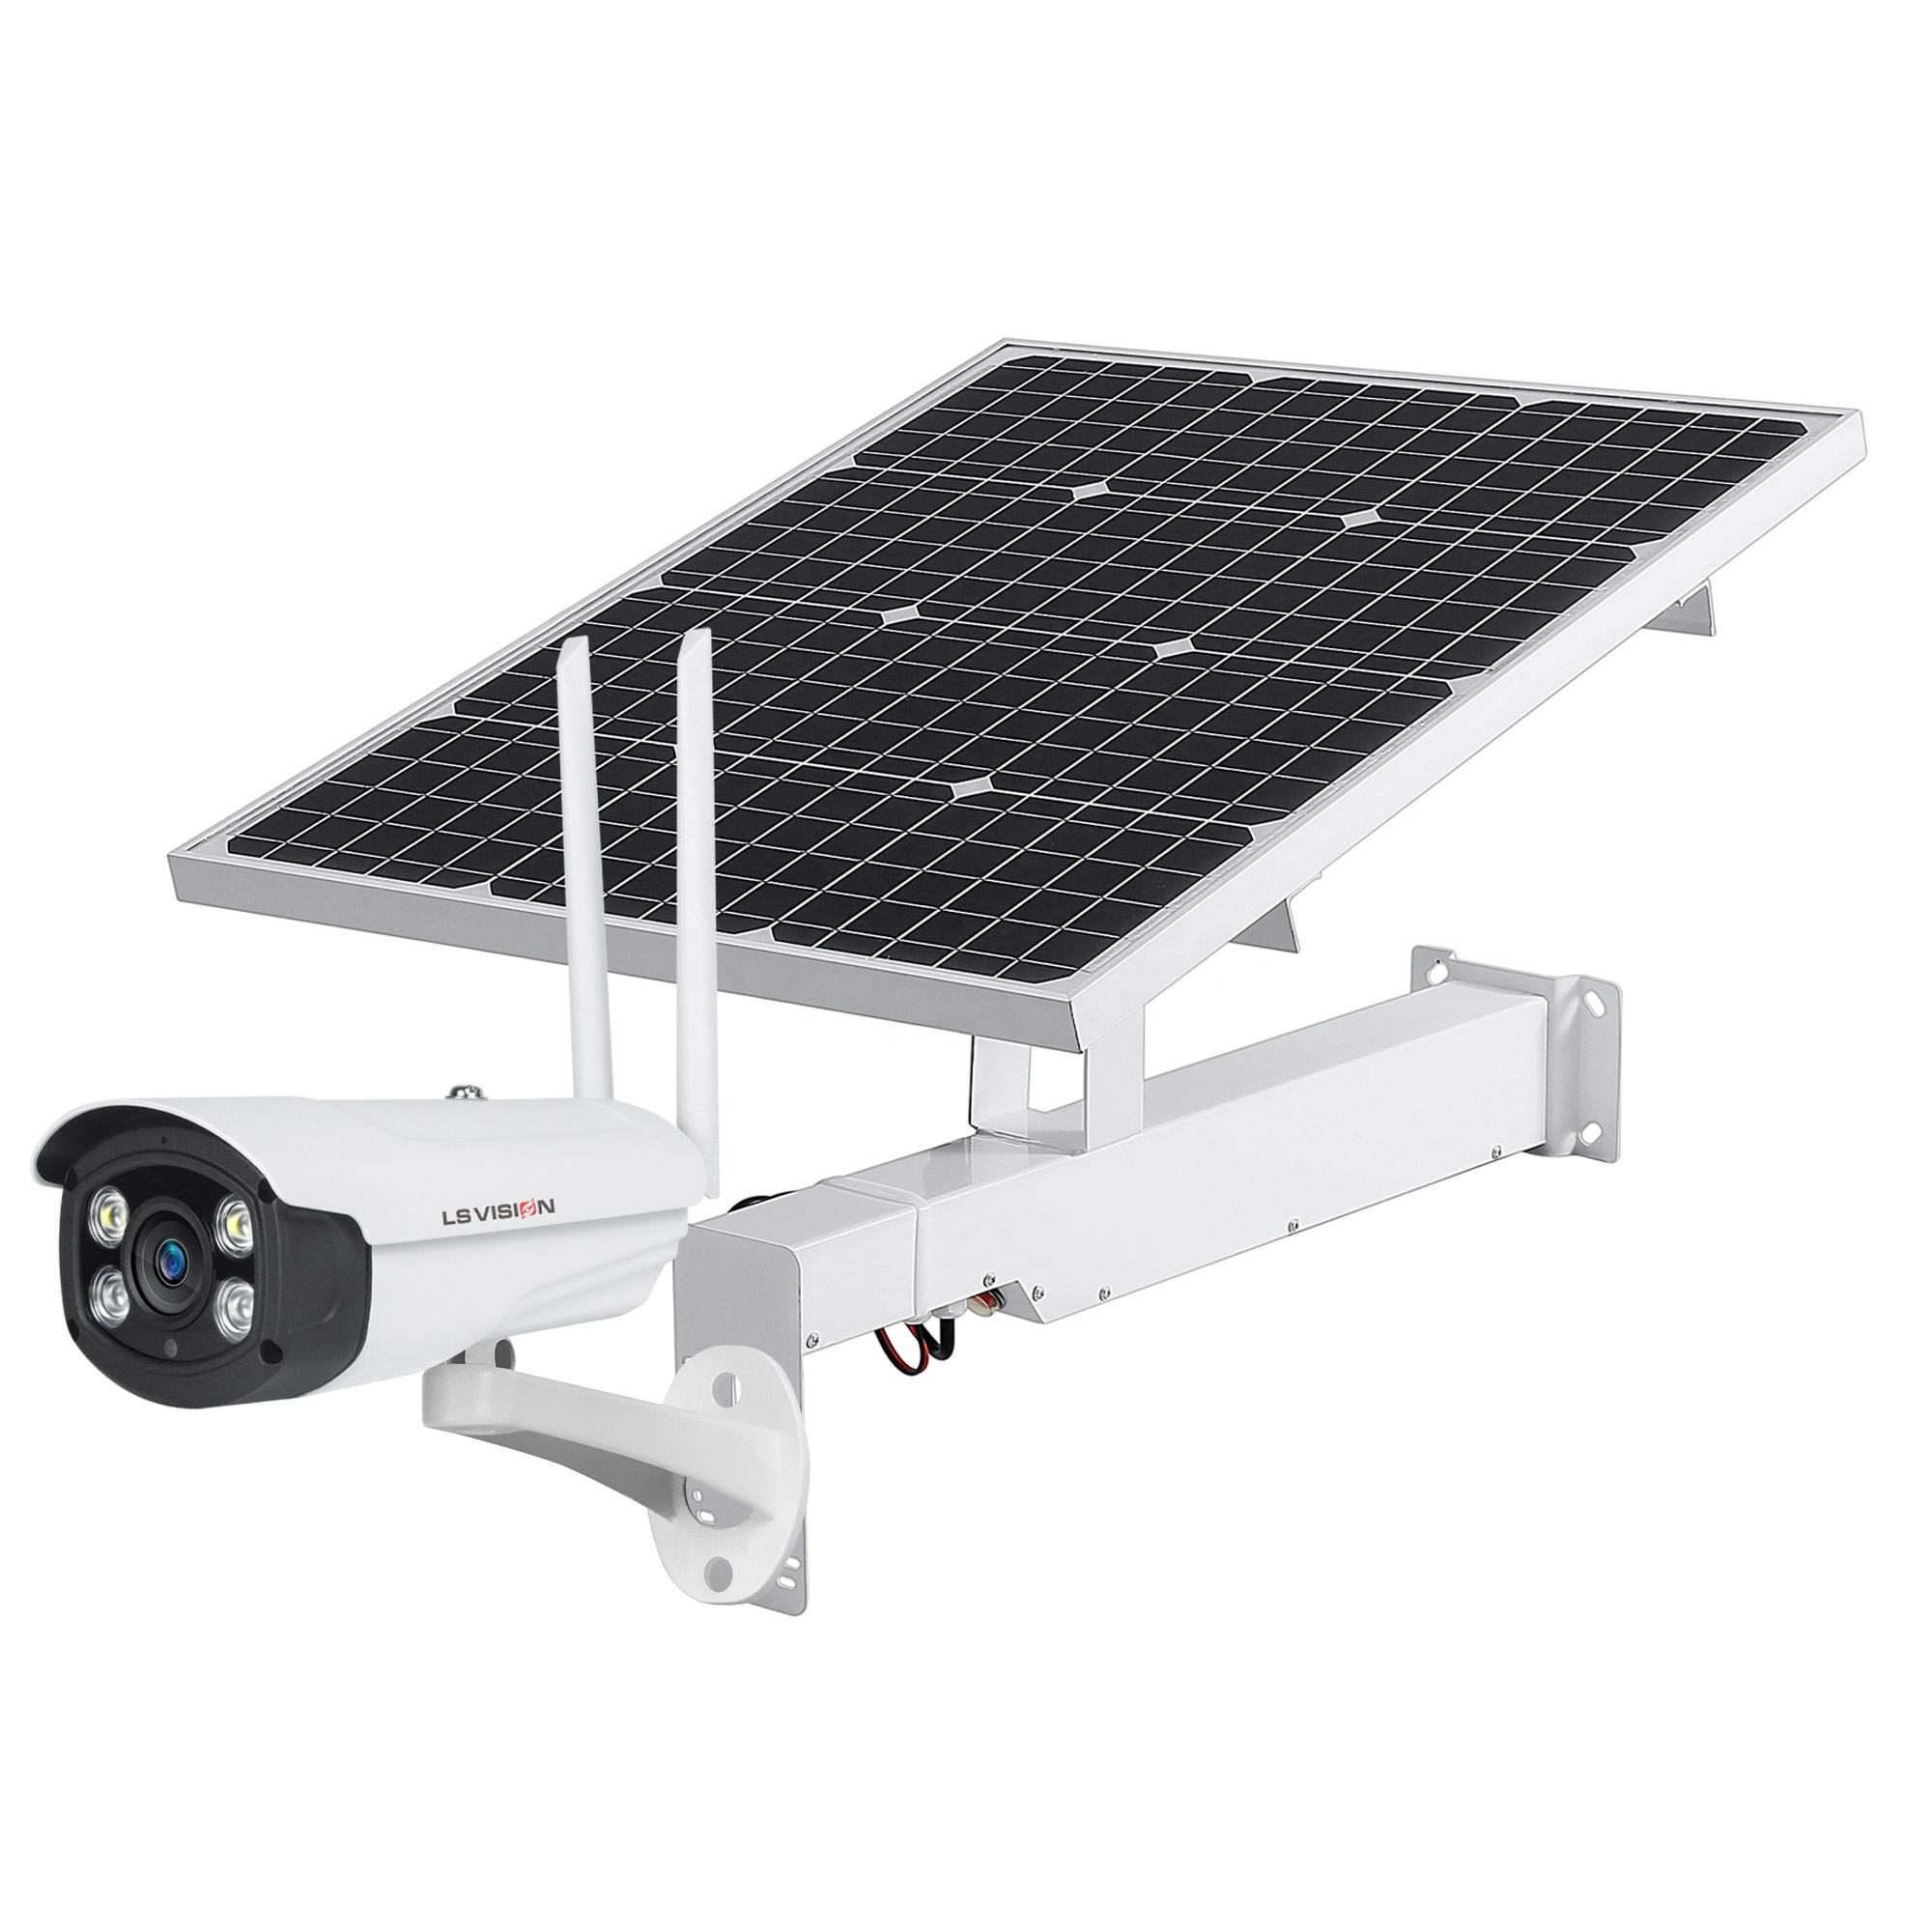 LS VISION 4G Solar Powered Camera System Accessories with 50W 70W Solar Panel 12V 30AH lithium Battery and Mounting Bracket